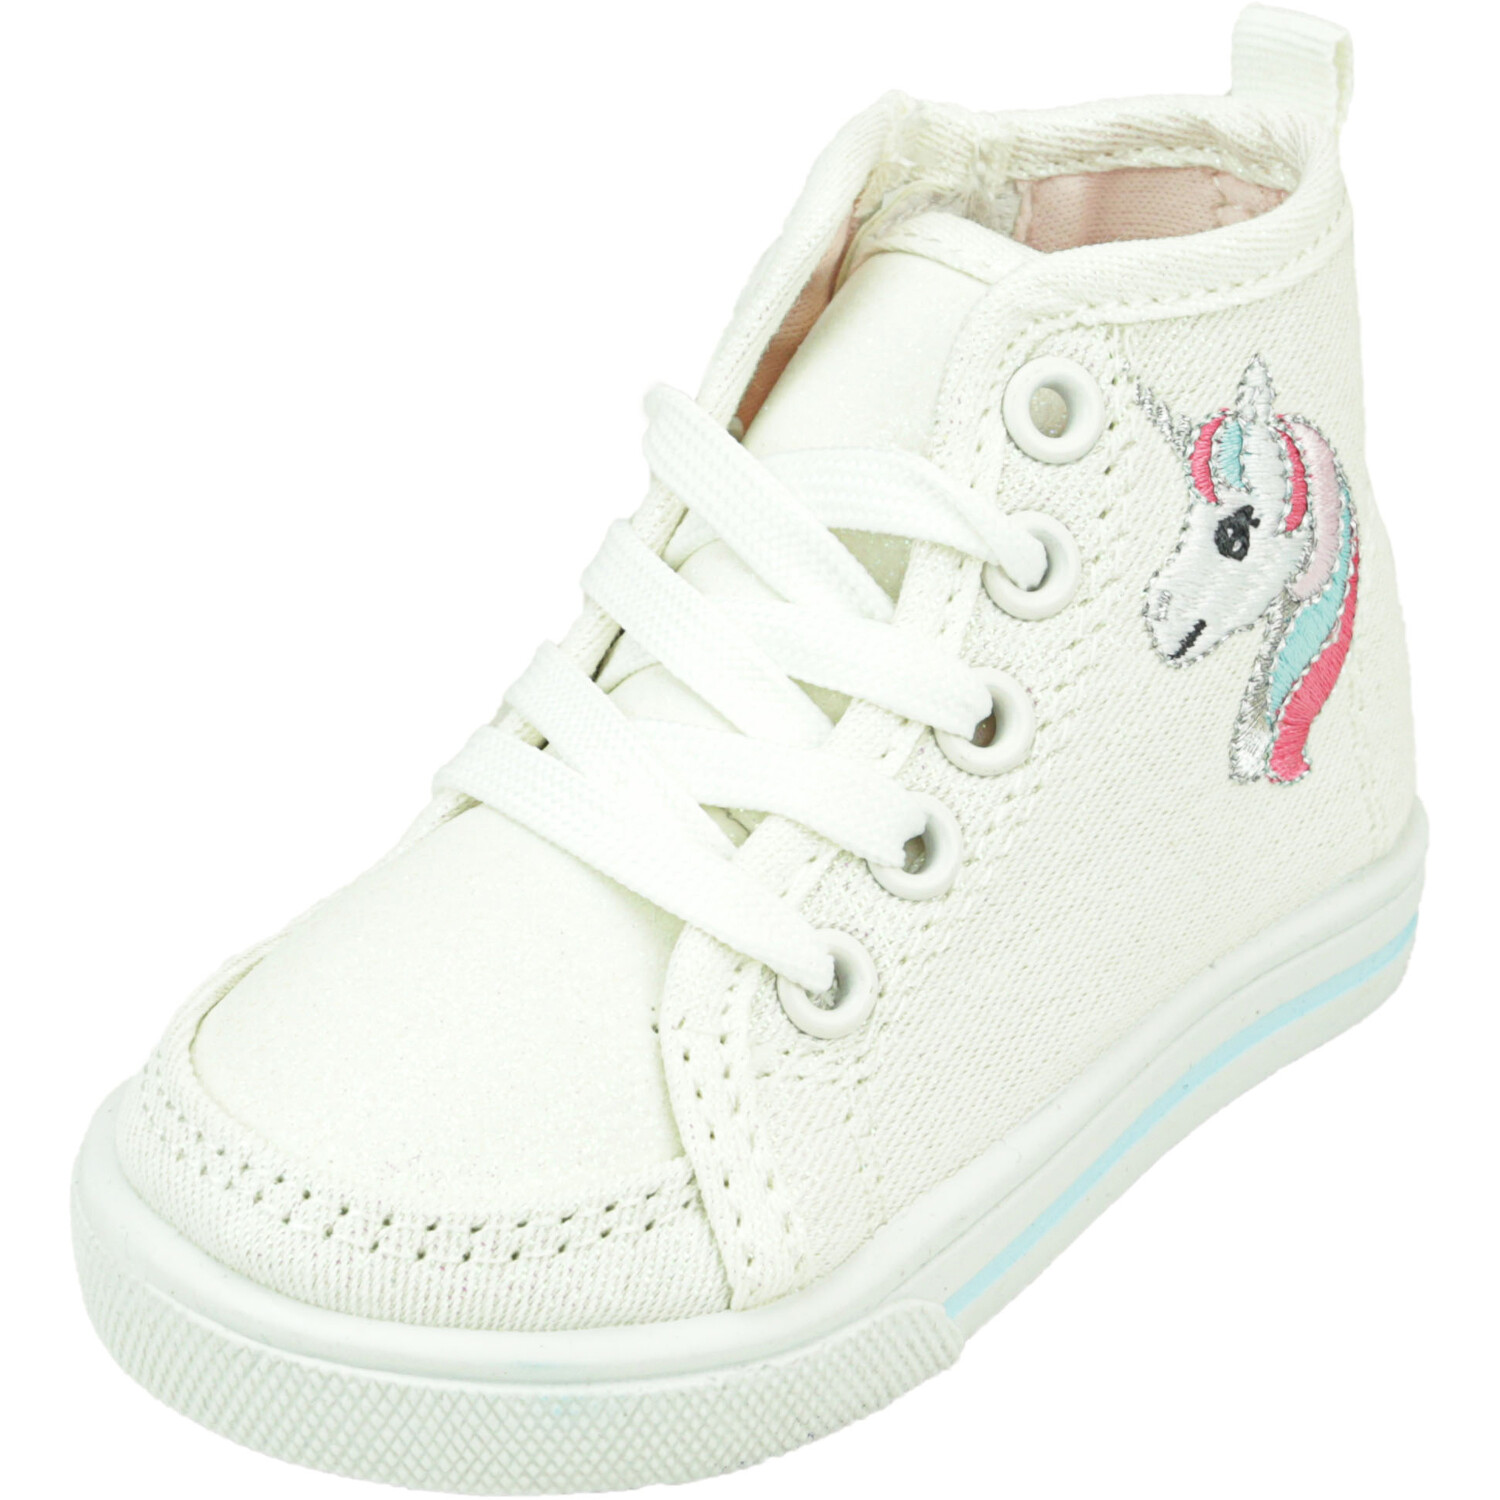 Carter's Ginger6 White High-Top Fabric Sneaker - 4M